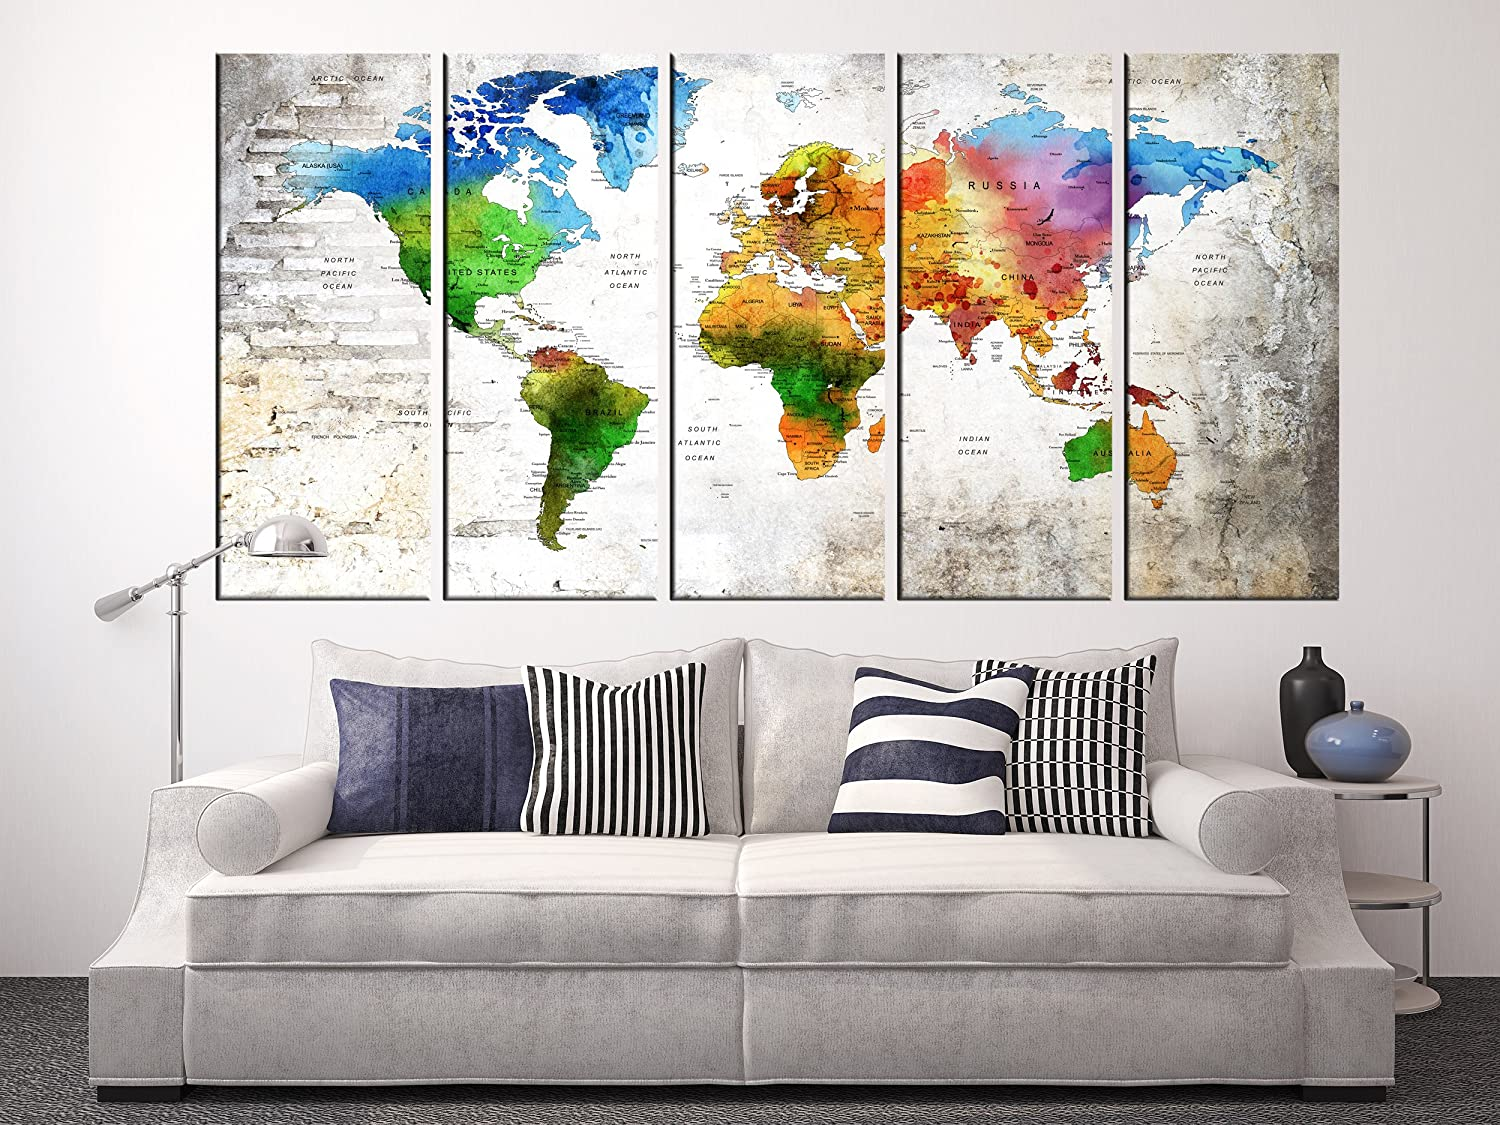 Amazon.com: Extra Large Wall Art World Map on Canvas Art ...